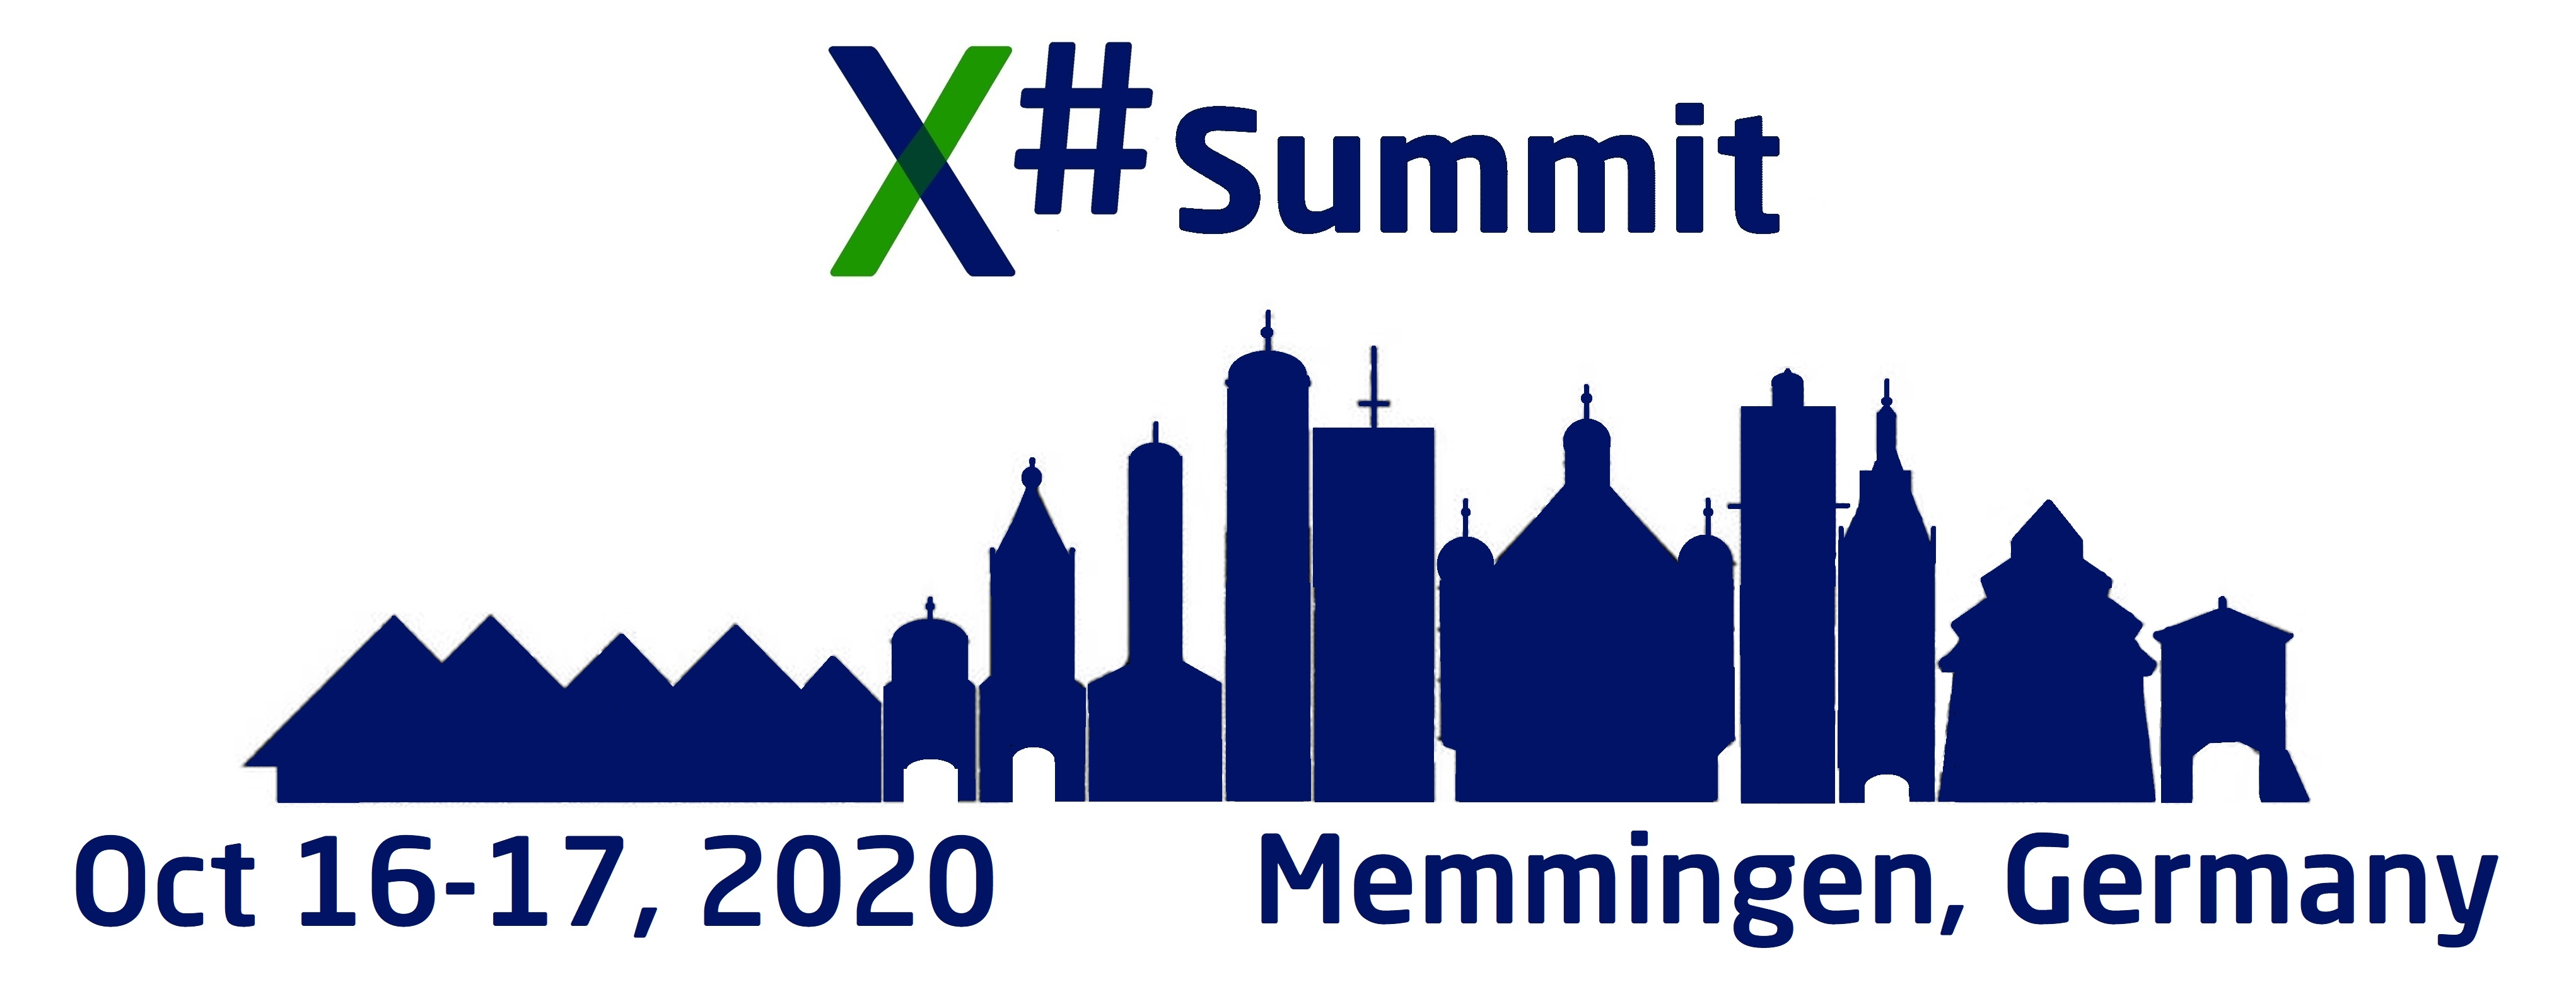 X# Summit Memmingen 2020